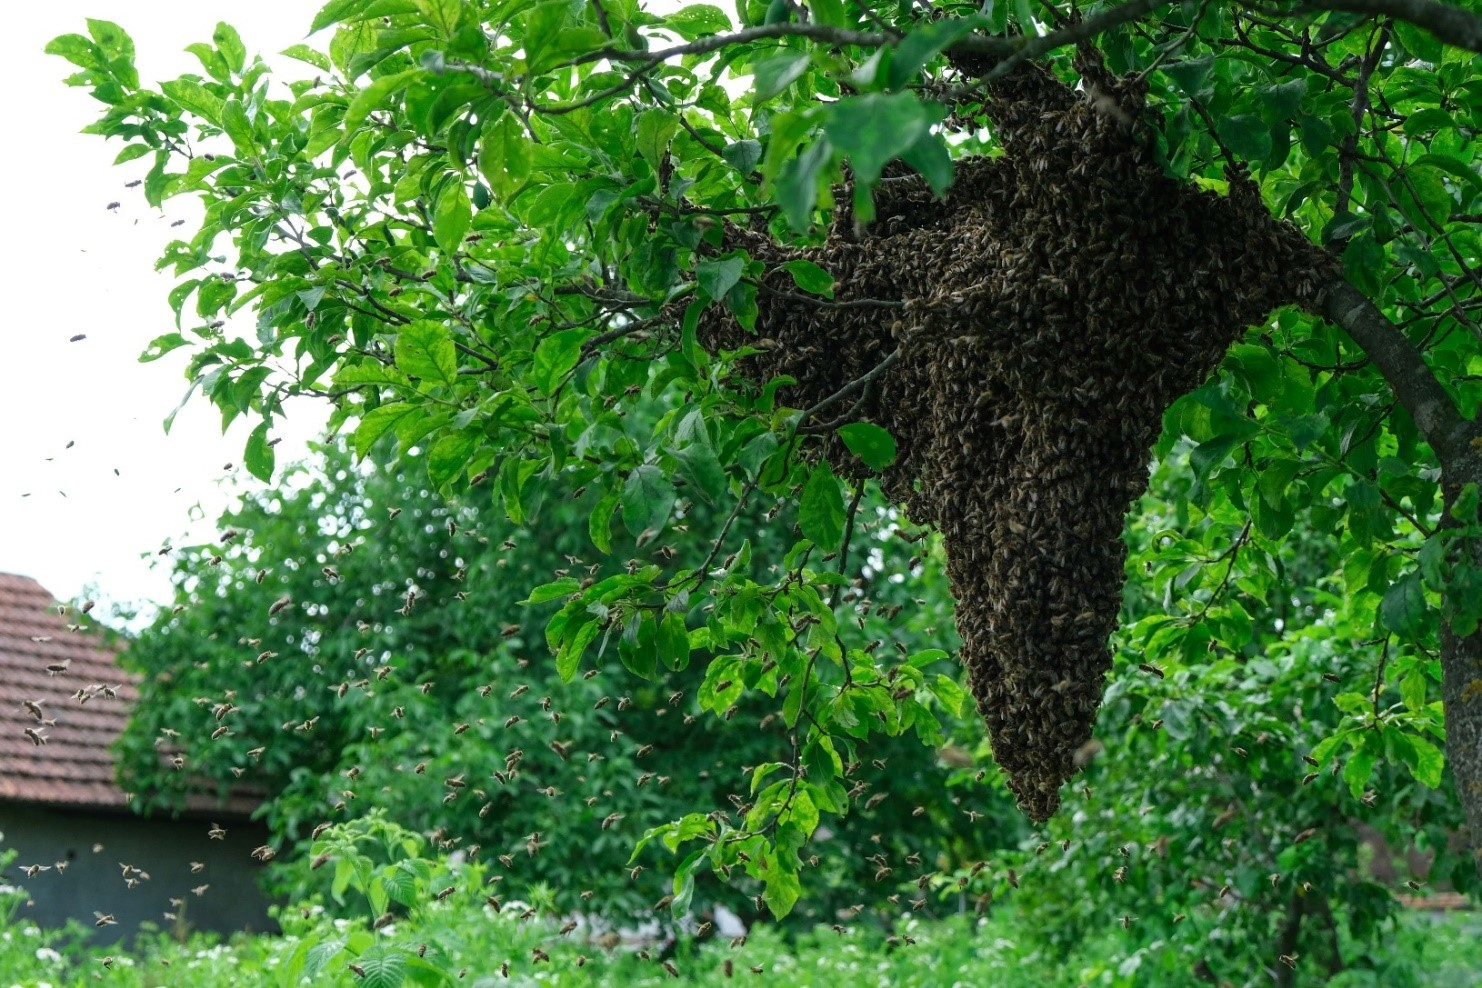 A swarm of bees in a tree